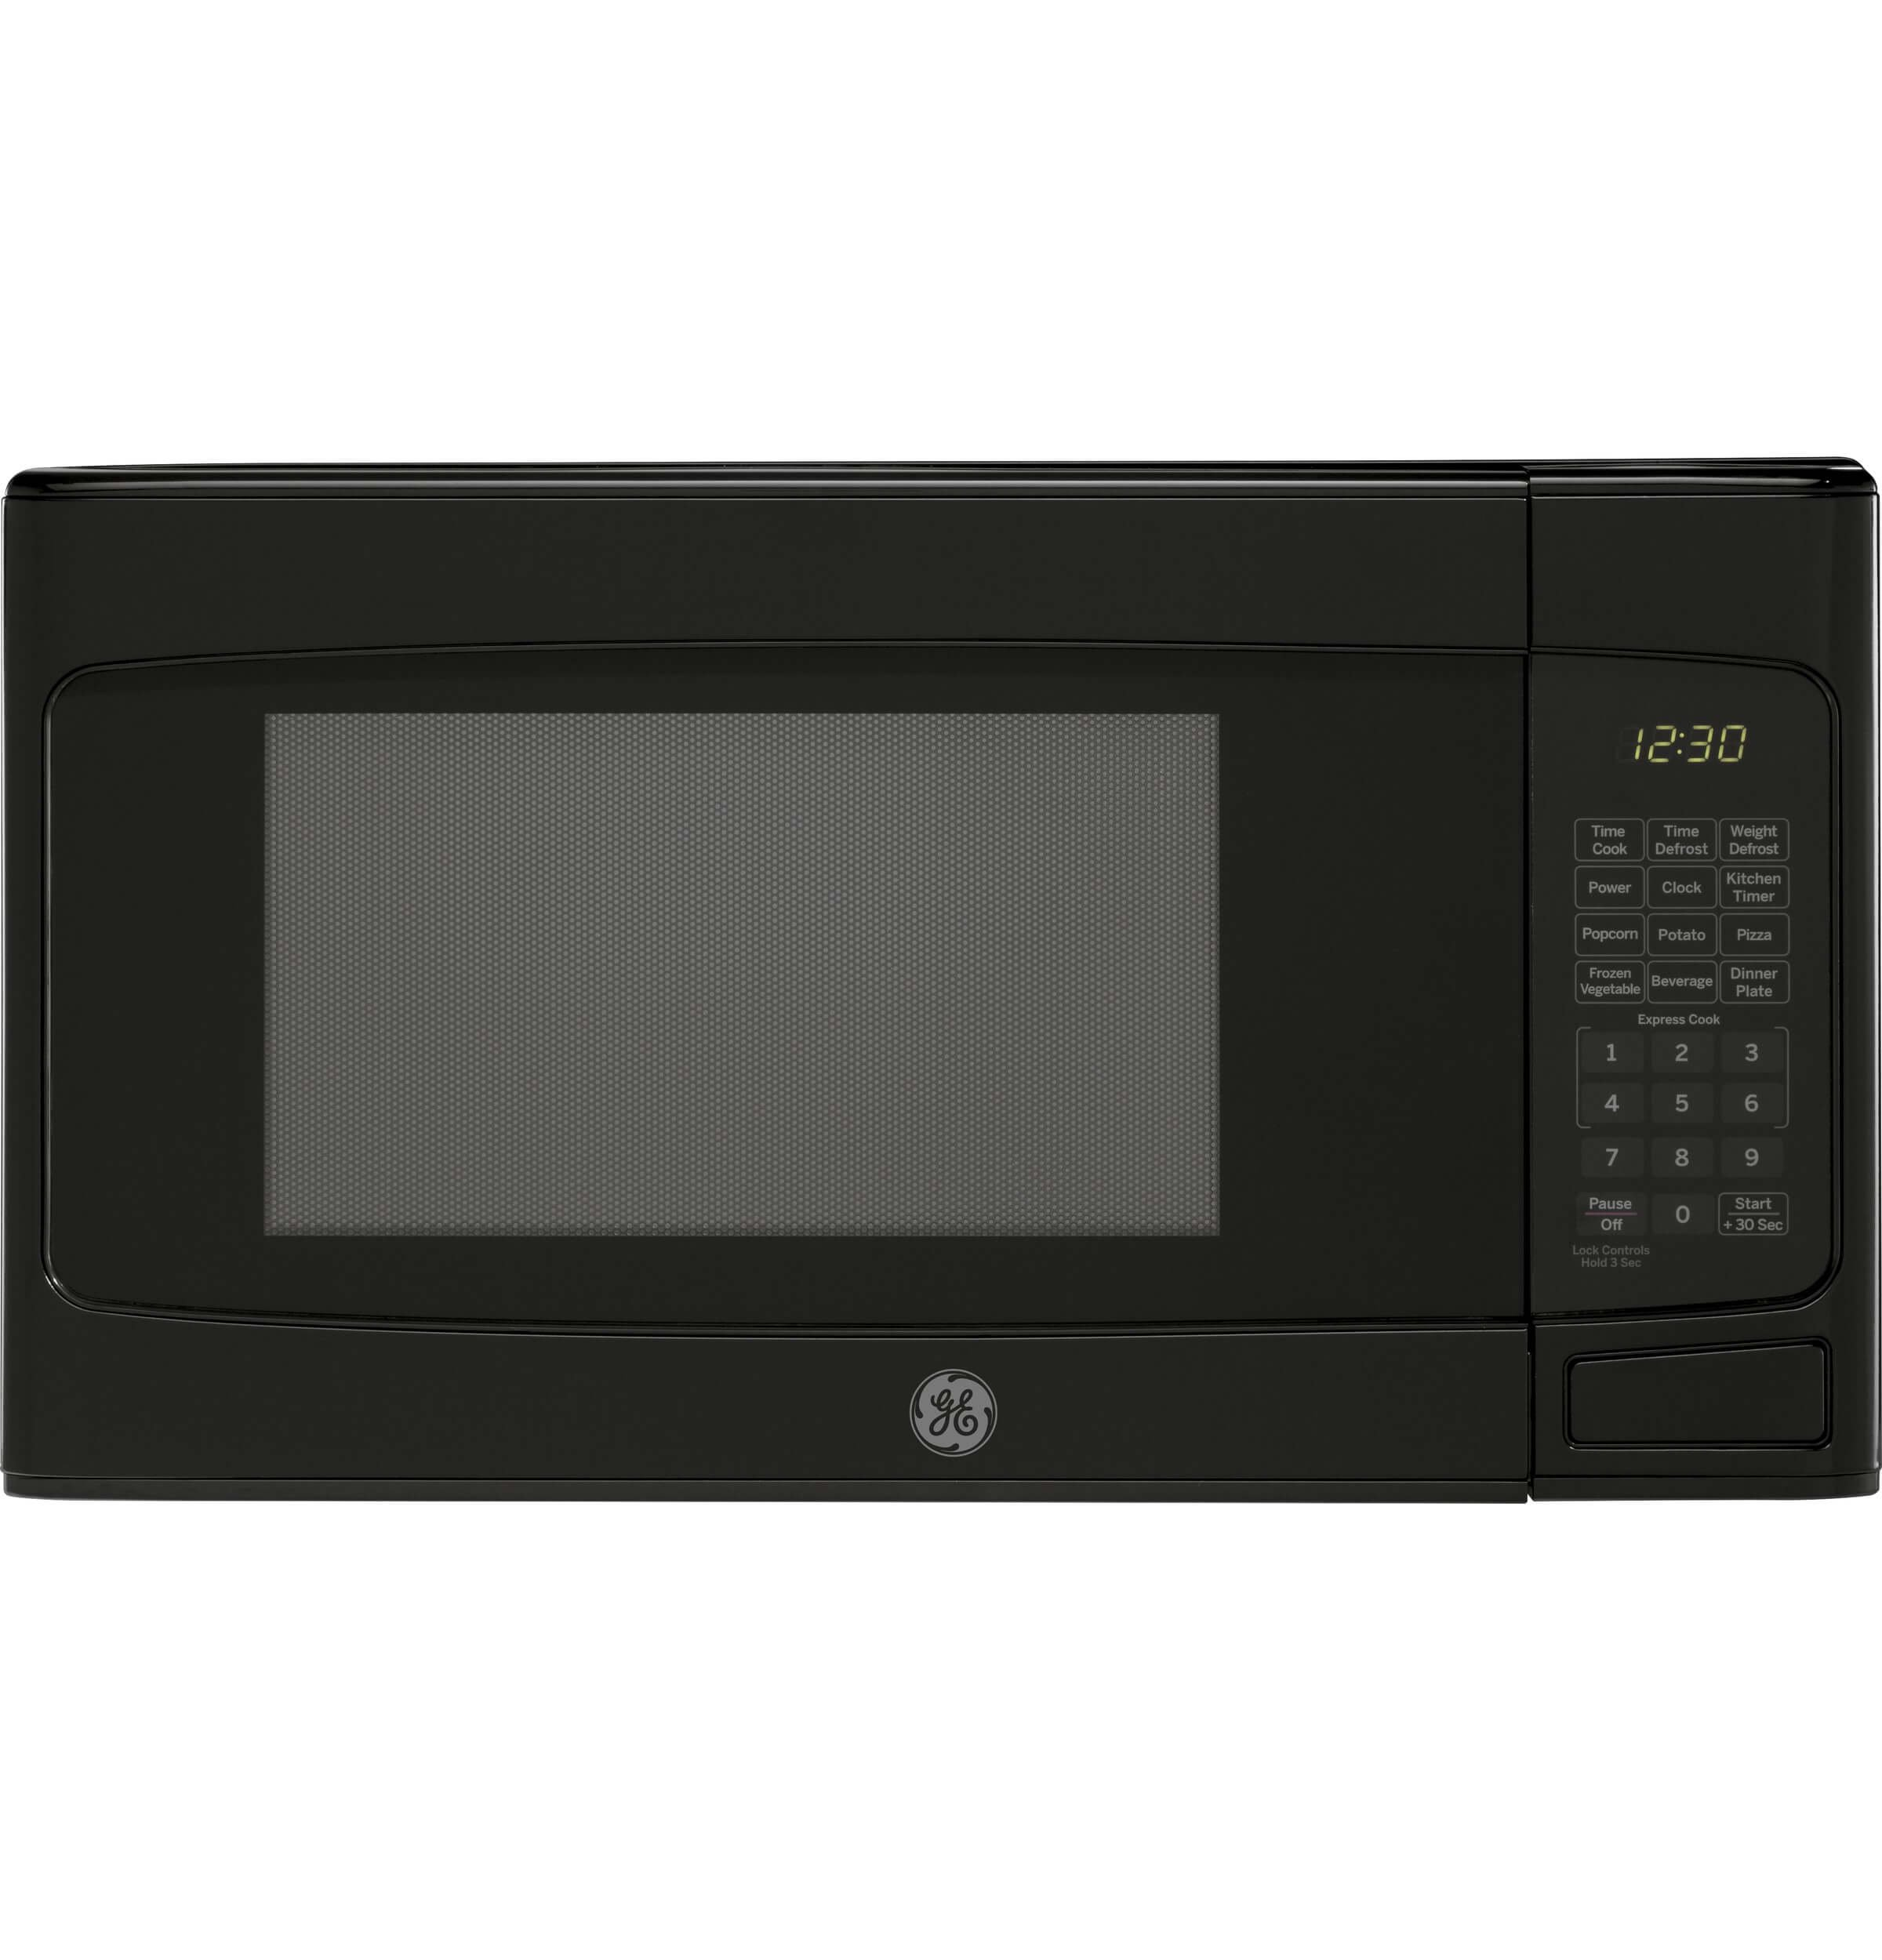 GE JES1145DMBB Microwave Oven by GE (Image #1)